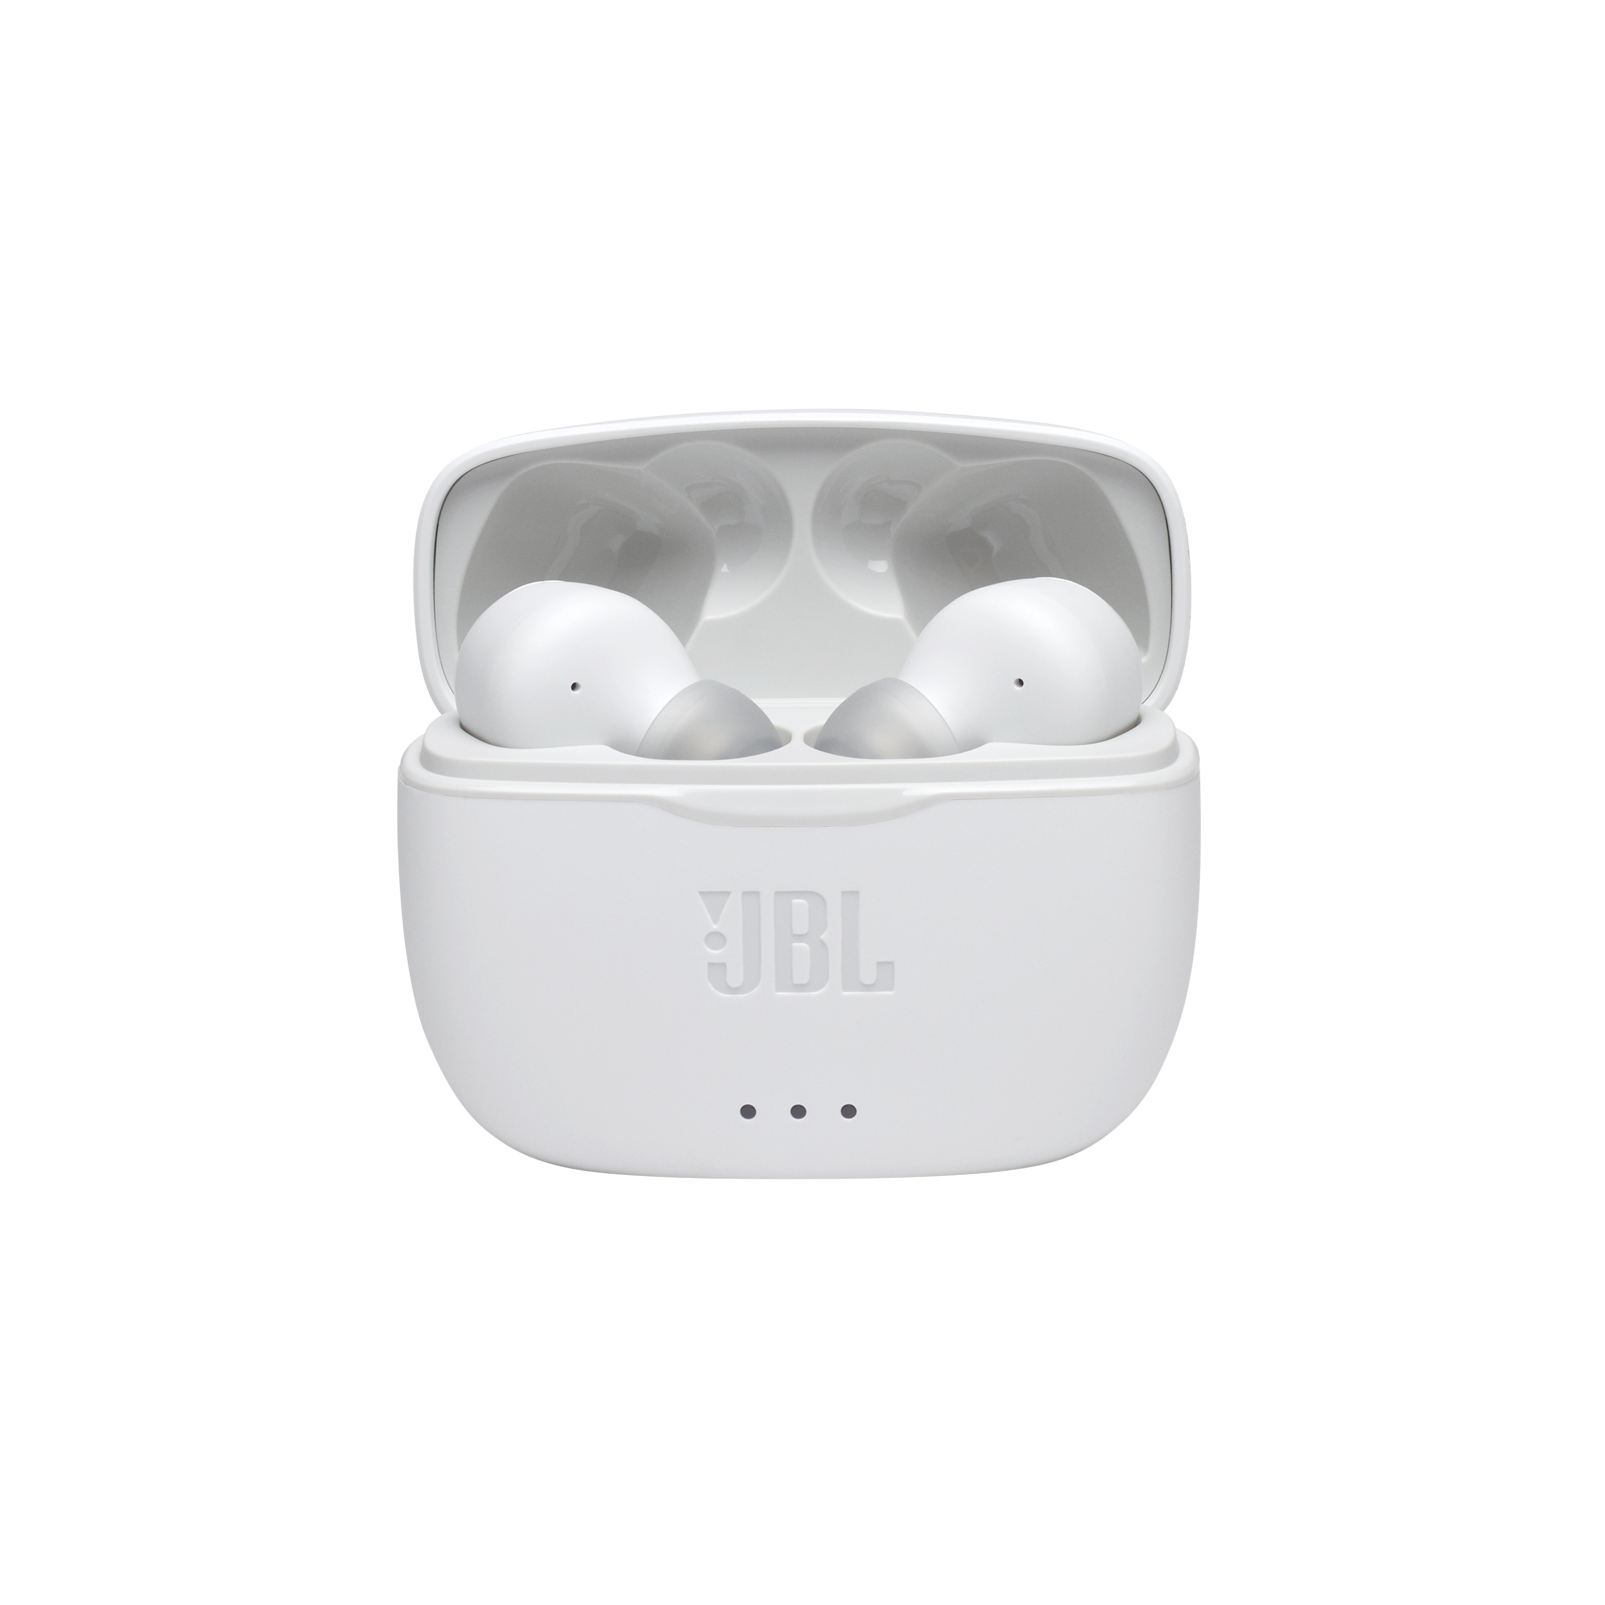 JBL Tune 215TWS - White - True wireless earbud headphones - Detailshot 4